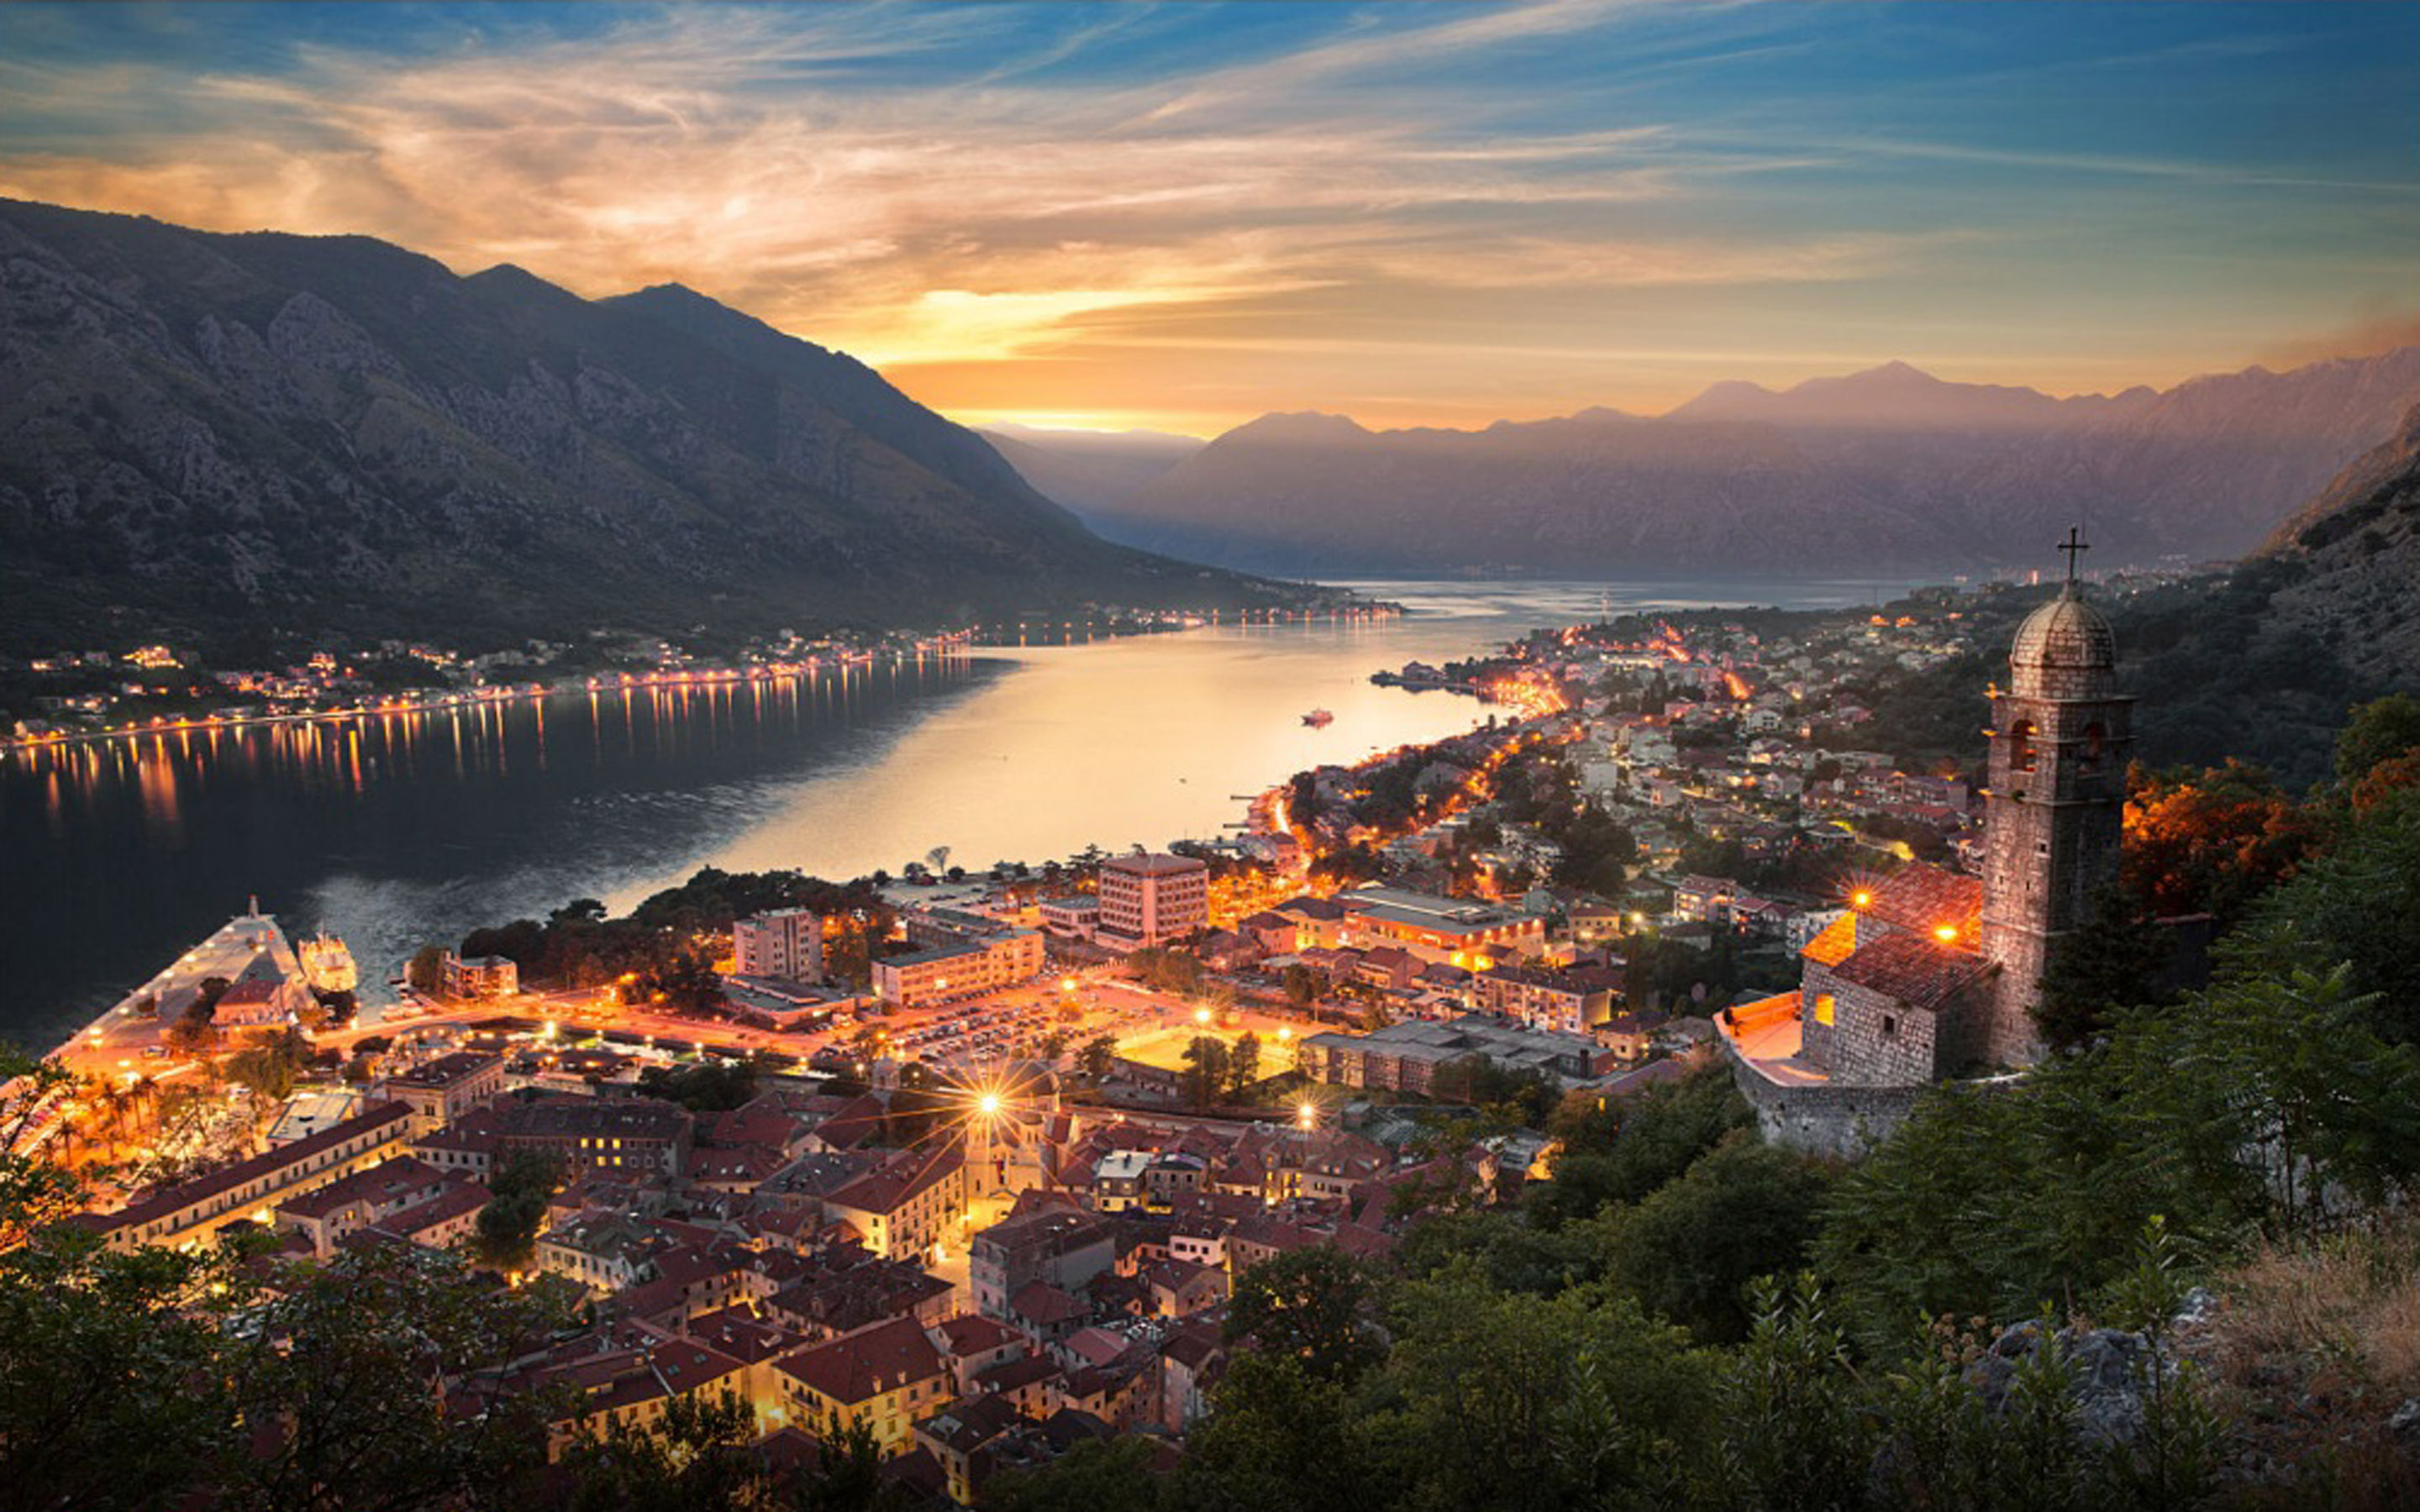 Galaxy Wallpaper Hd Download Montenegro City Kotor At Night Desktop Wallpaper Hd